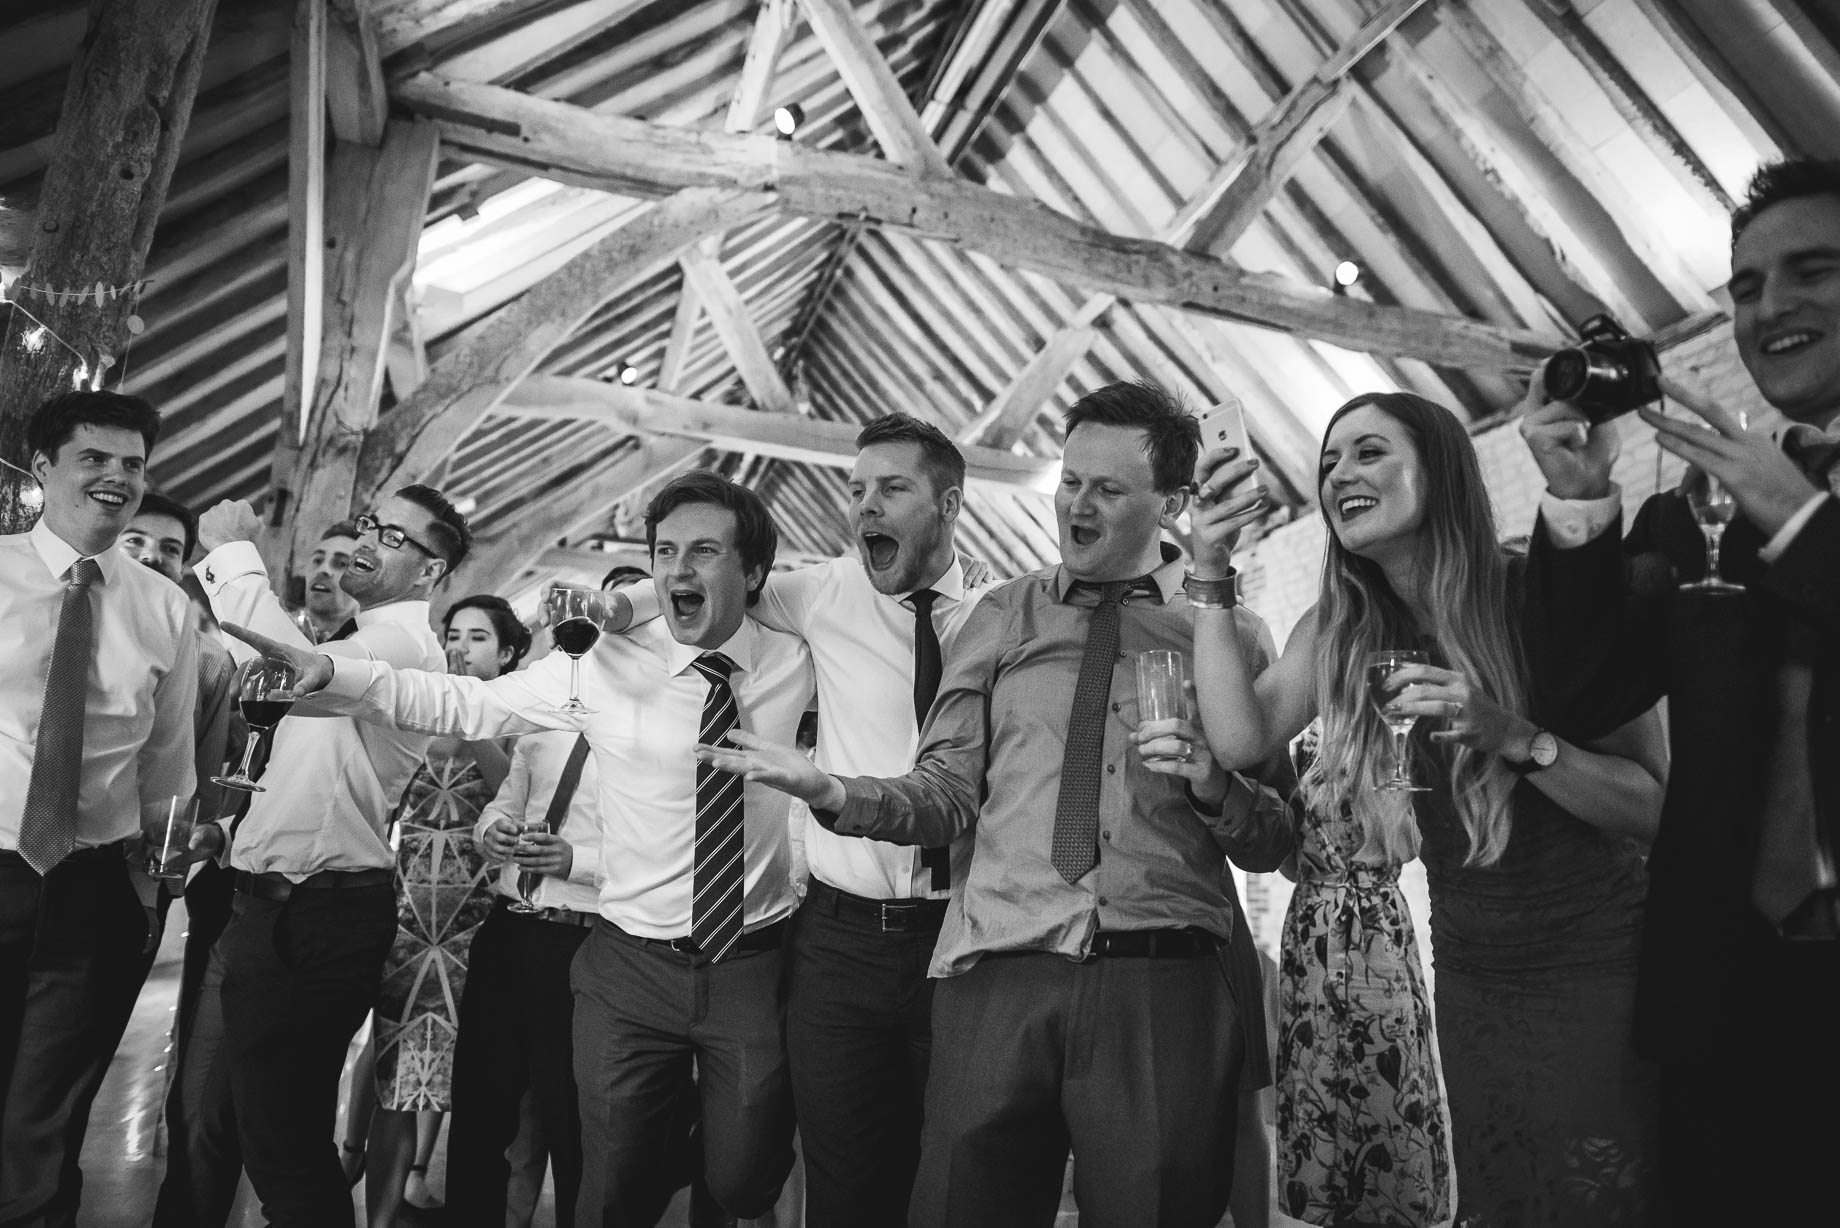 Bury Court Barn wedding photography by Guy Collier - Jo and Jamie (152 of 160)